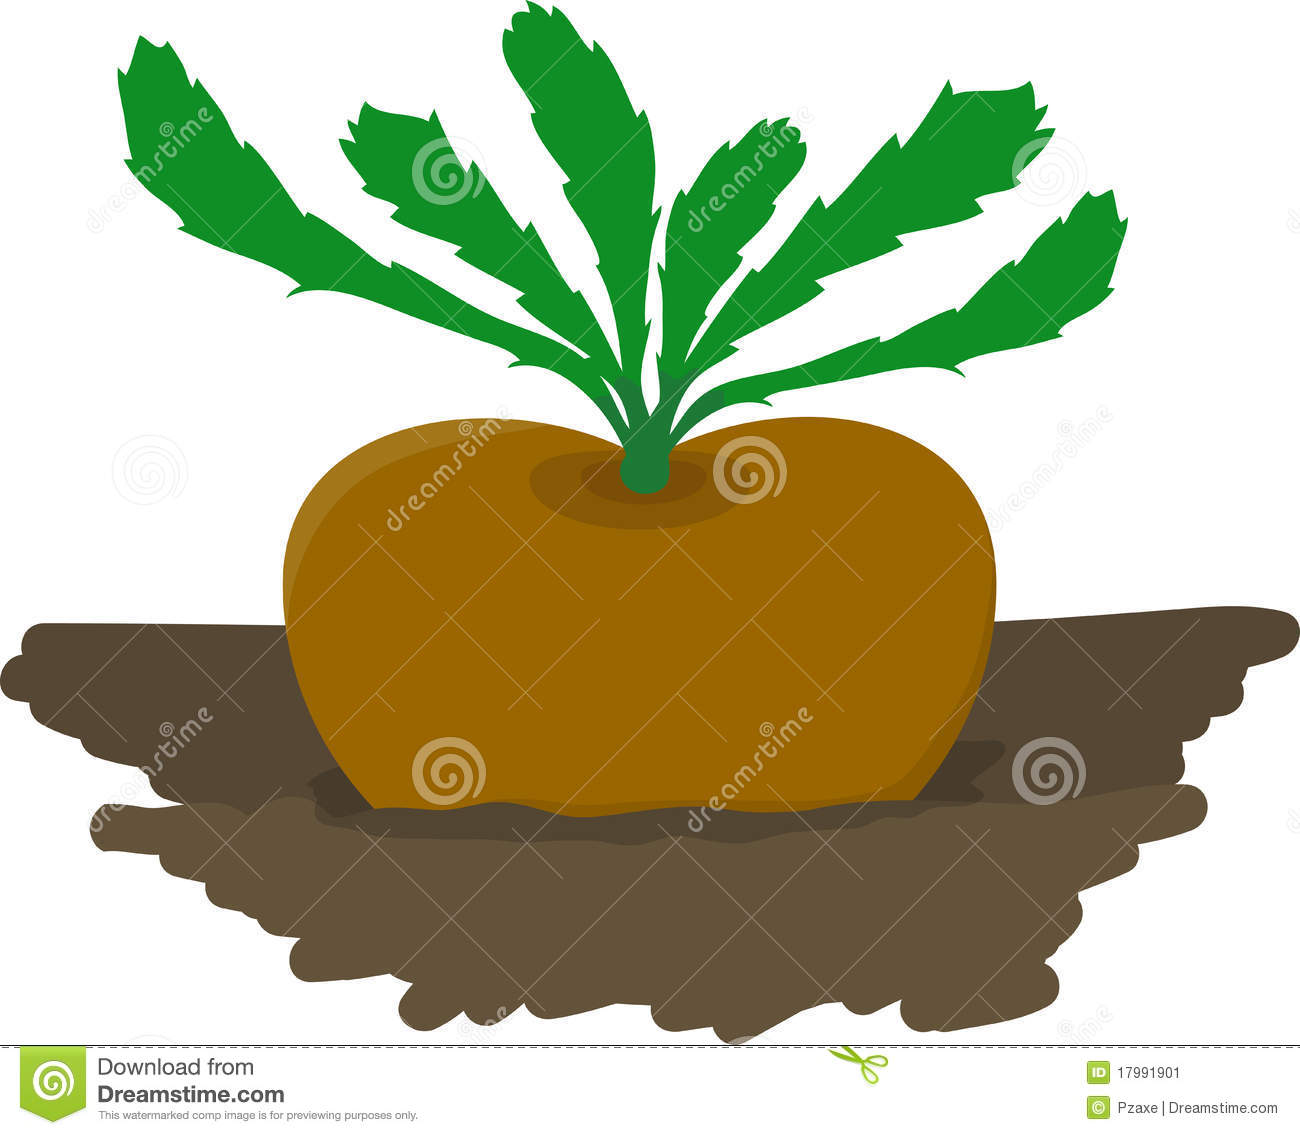 Turnip Growing In Garden - Vector Illustration Stock Vector ...